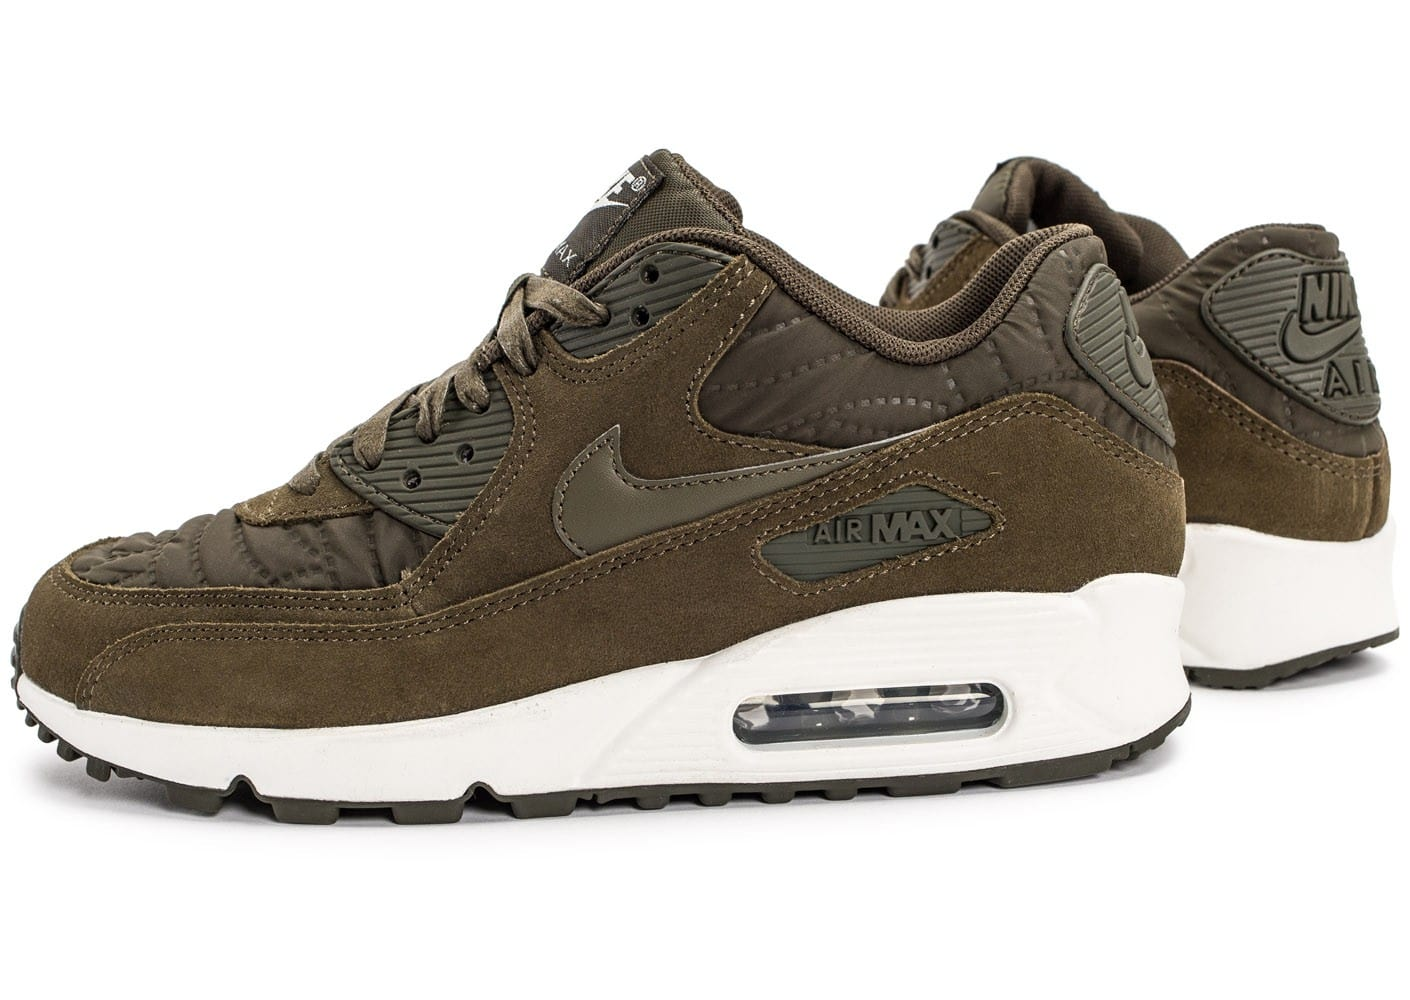 the latest d1c0f ccbe9 ... blanc vert f13c8 where can i buy cliquez pour zoomer chaussures nike  air max 90 premium olive vue extérieure ...